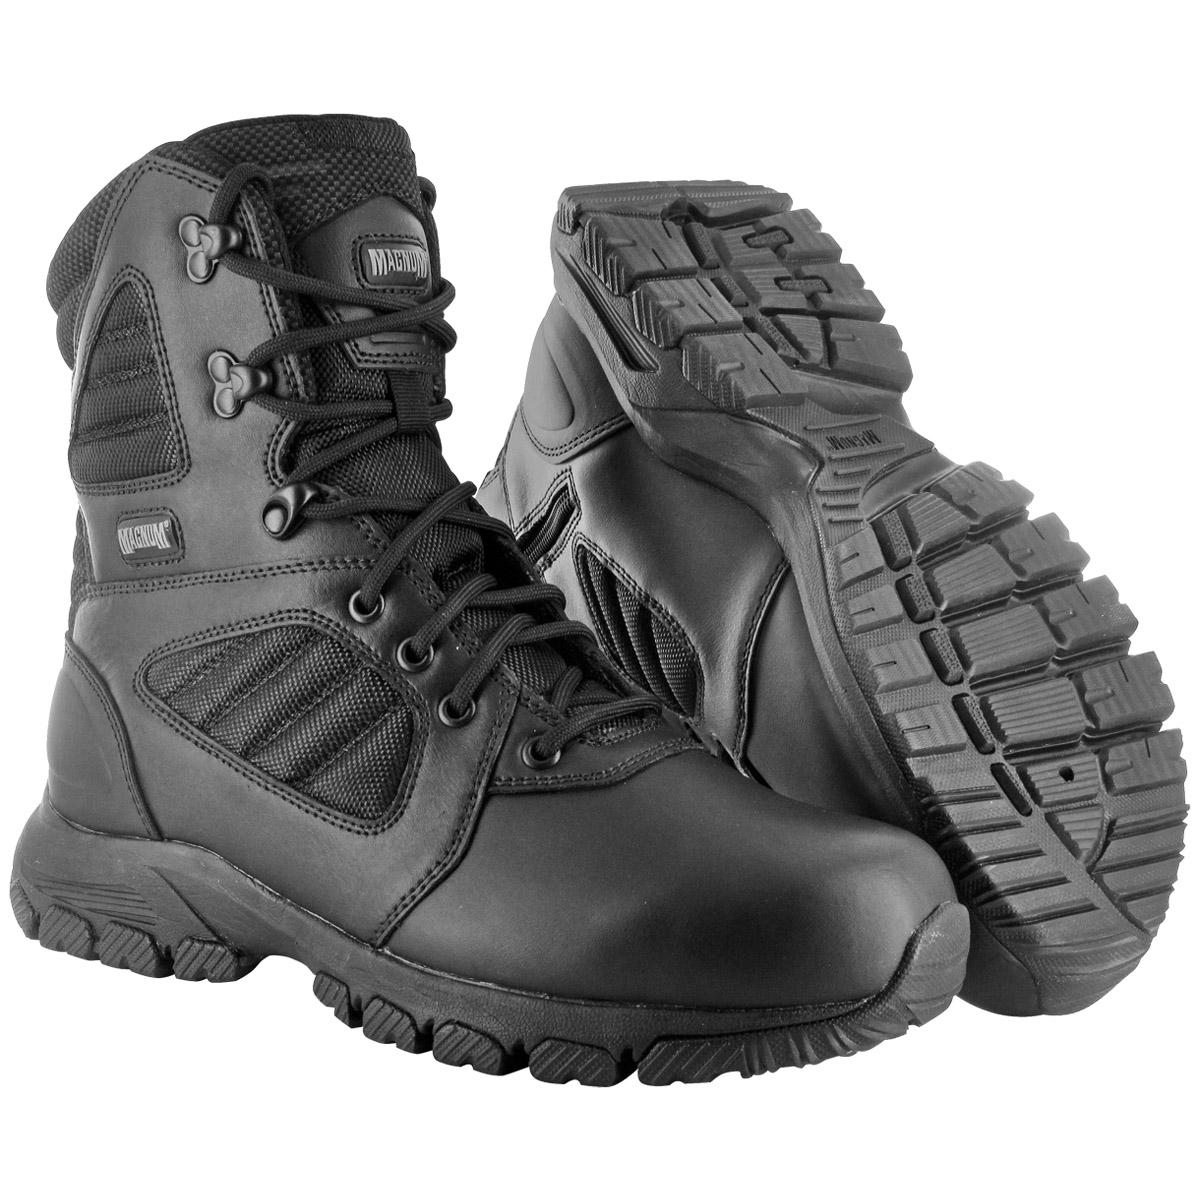 Magnum-Lynx-8-0-Side-Zip-Tactical-Boots-